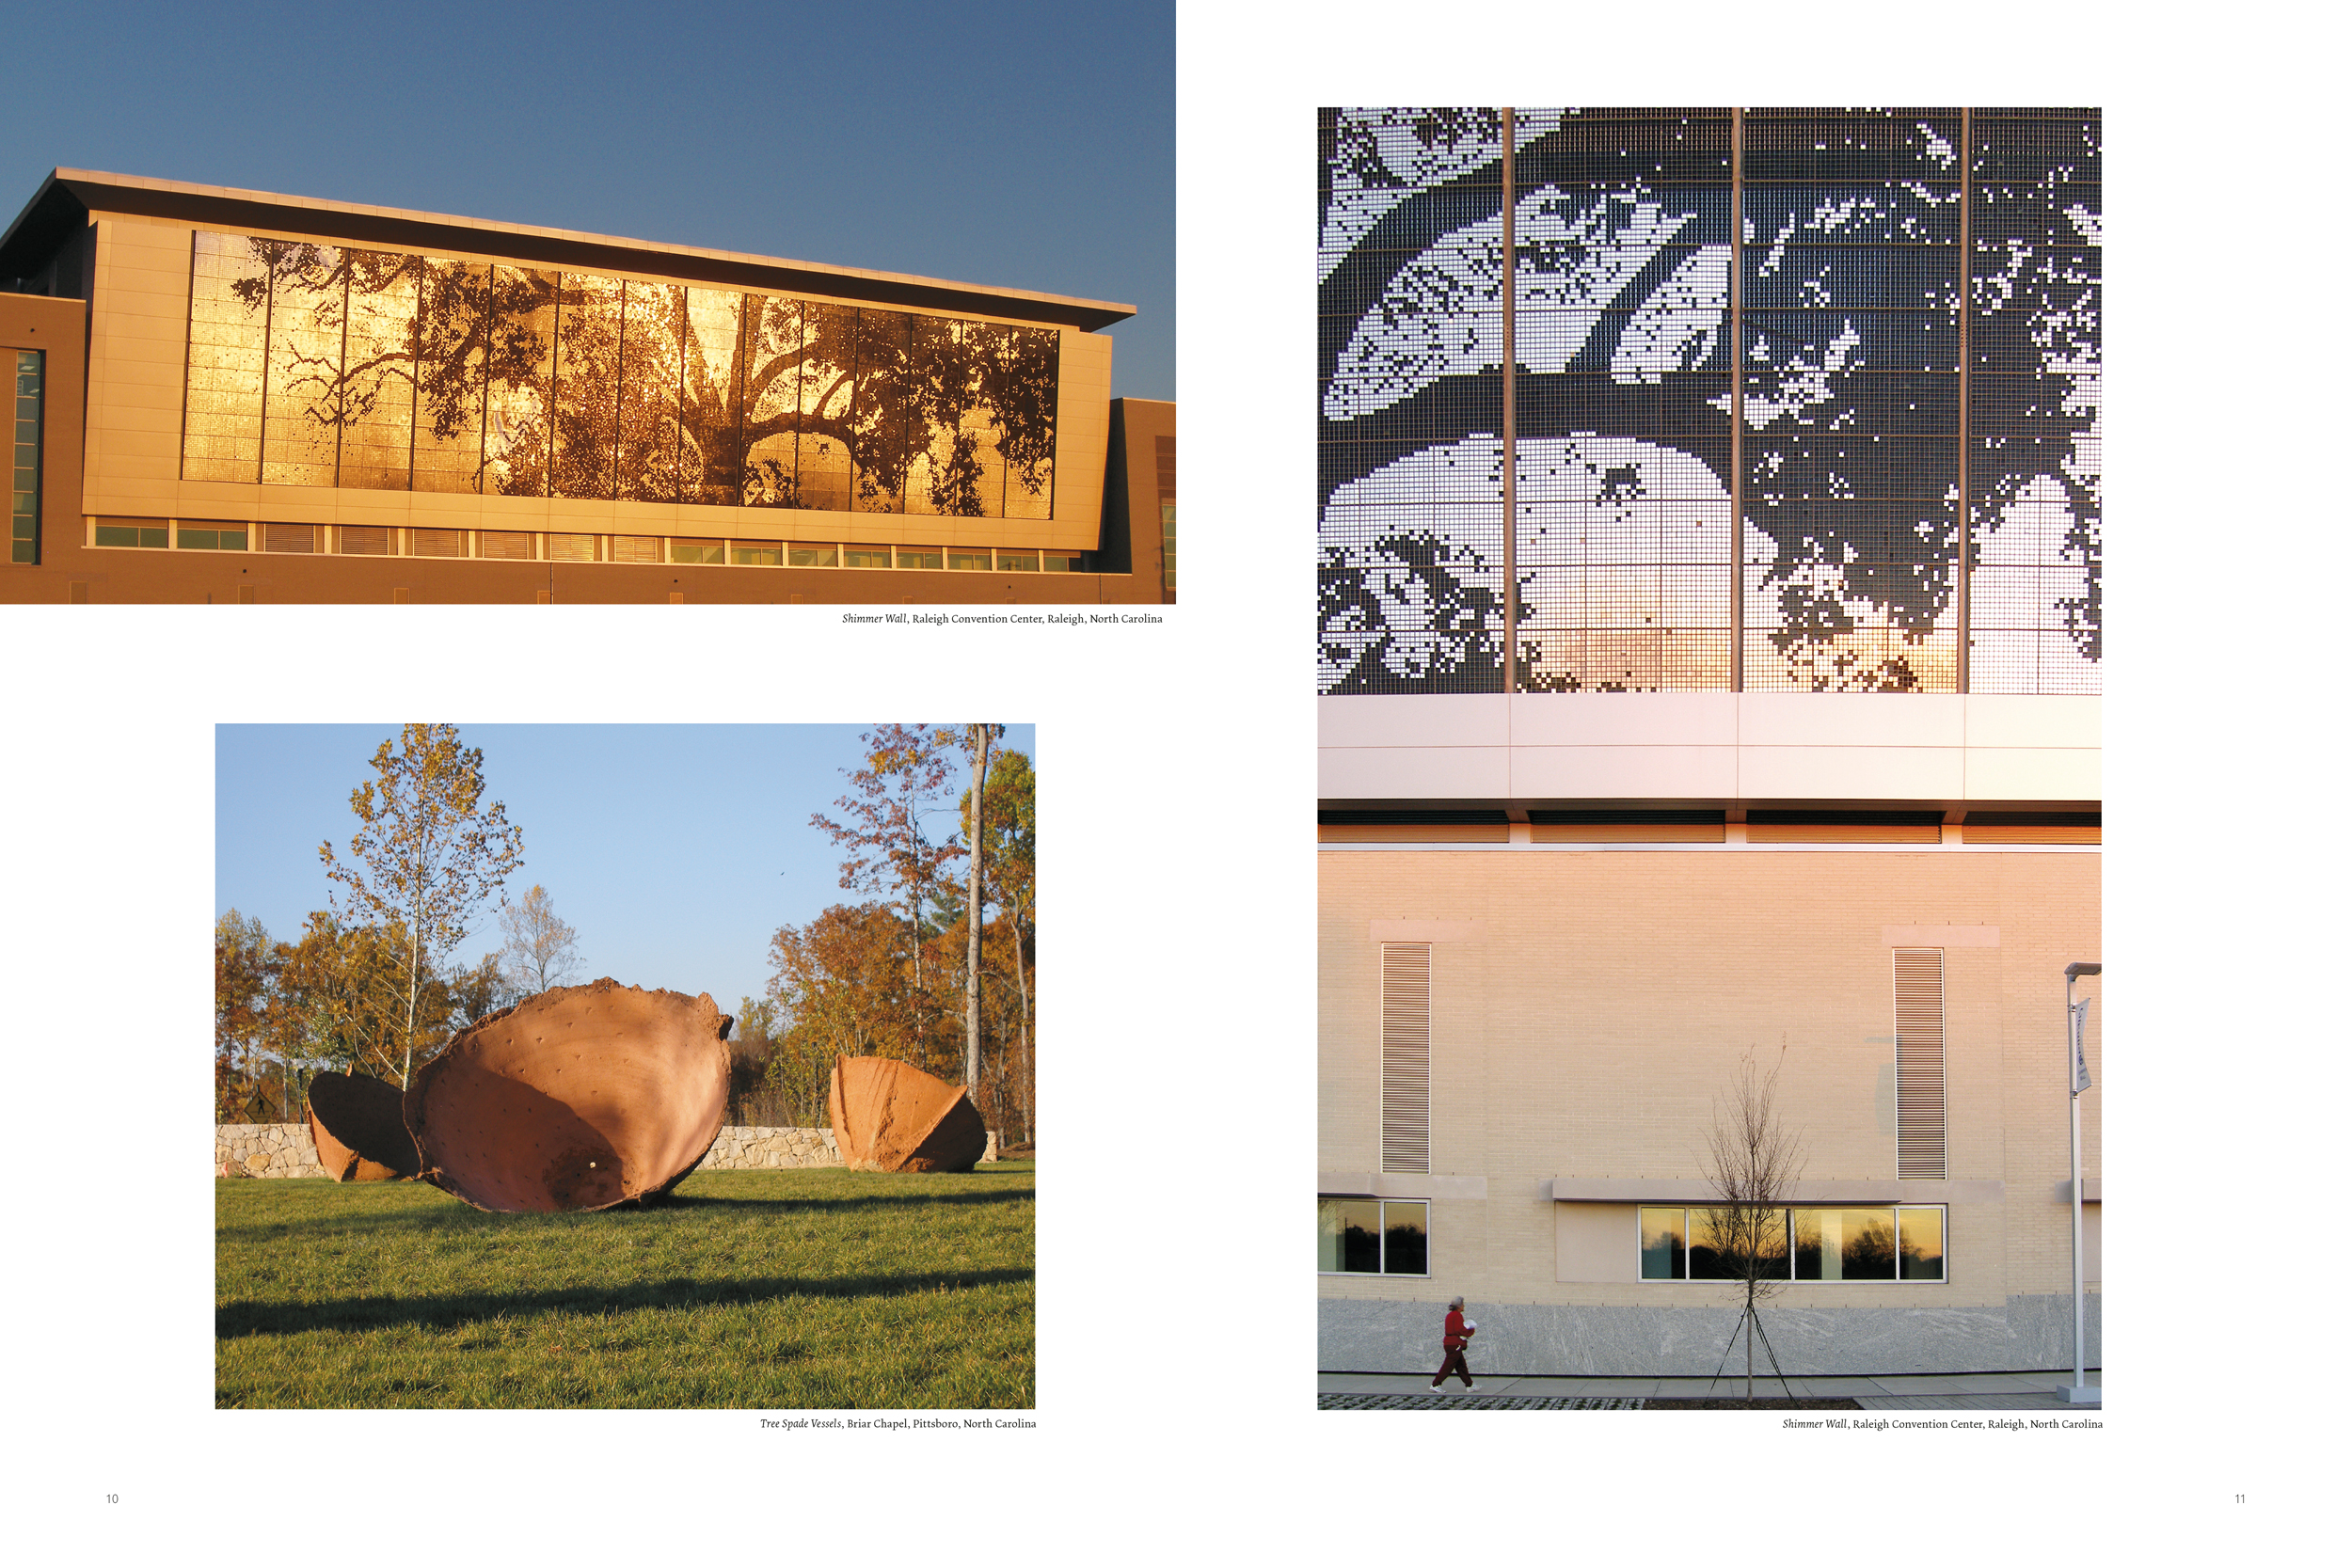 Spread from the section of photographs from site-specific installations across North Carolina.